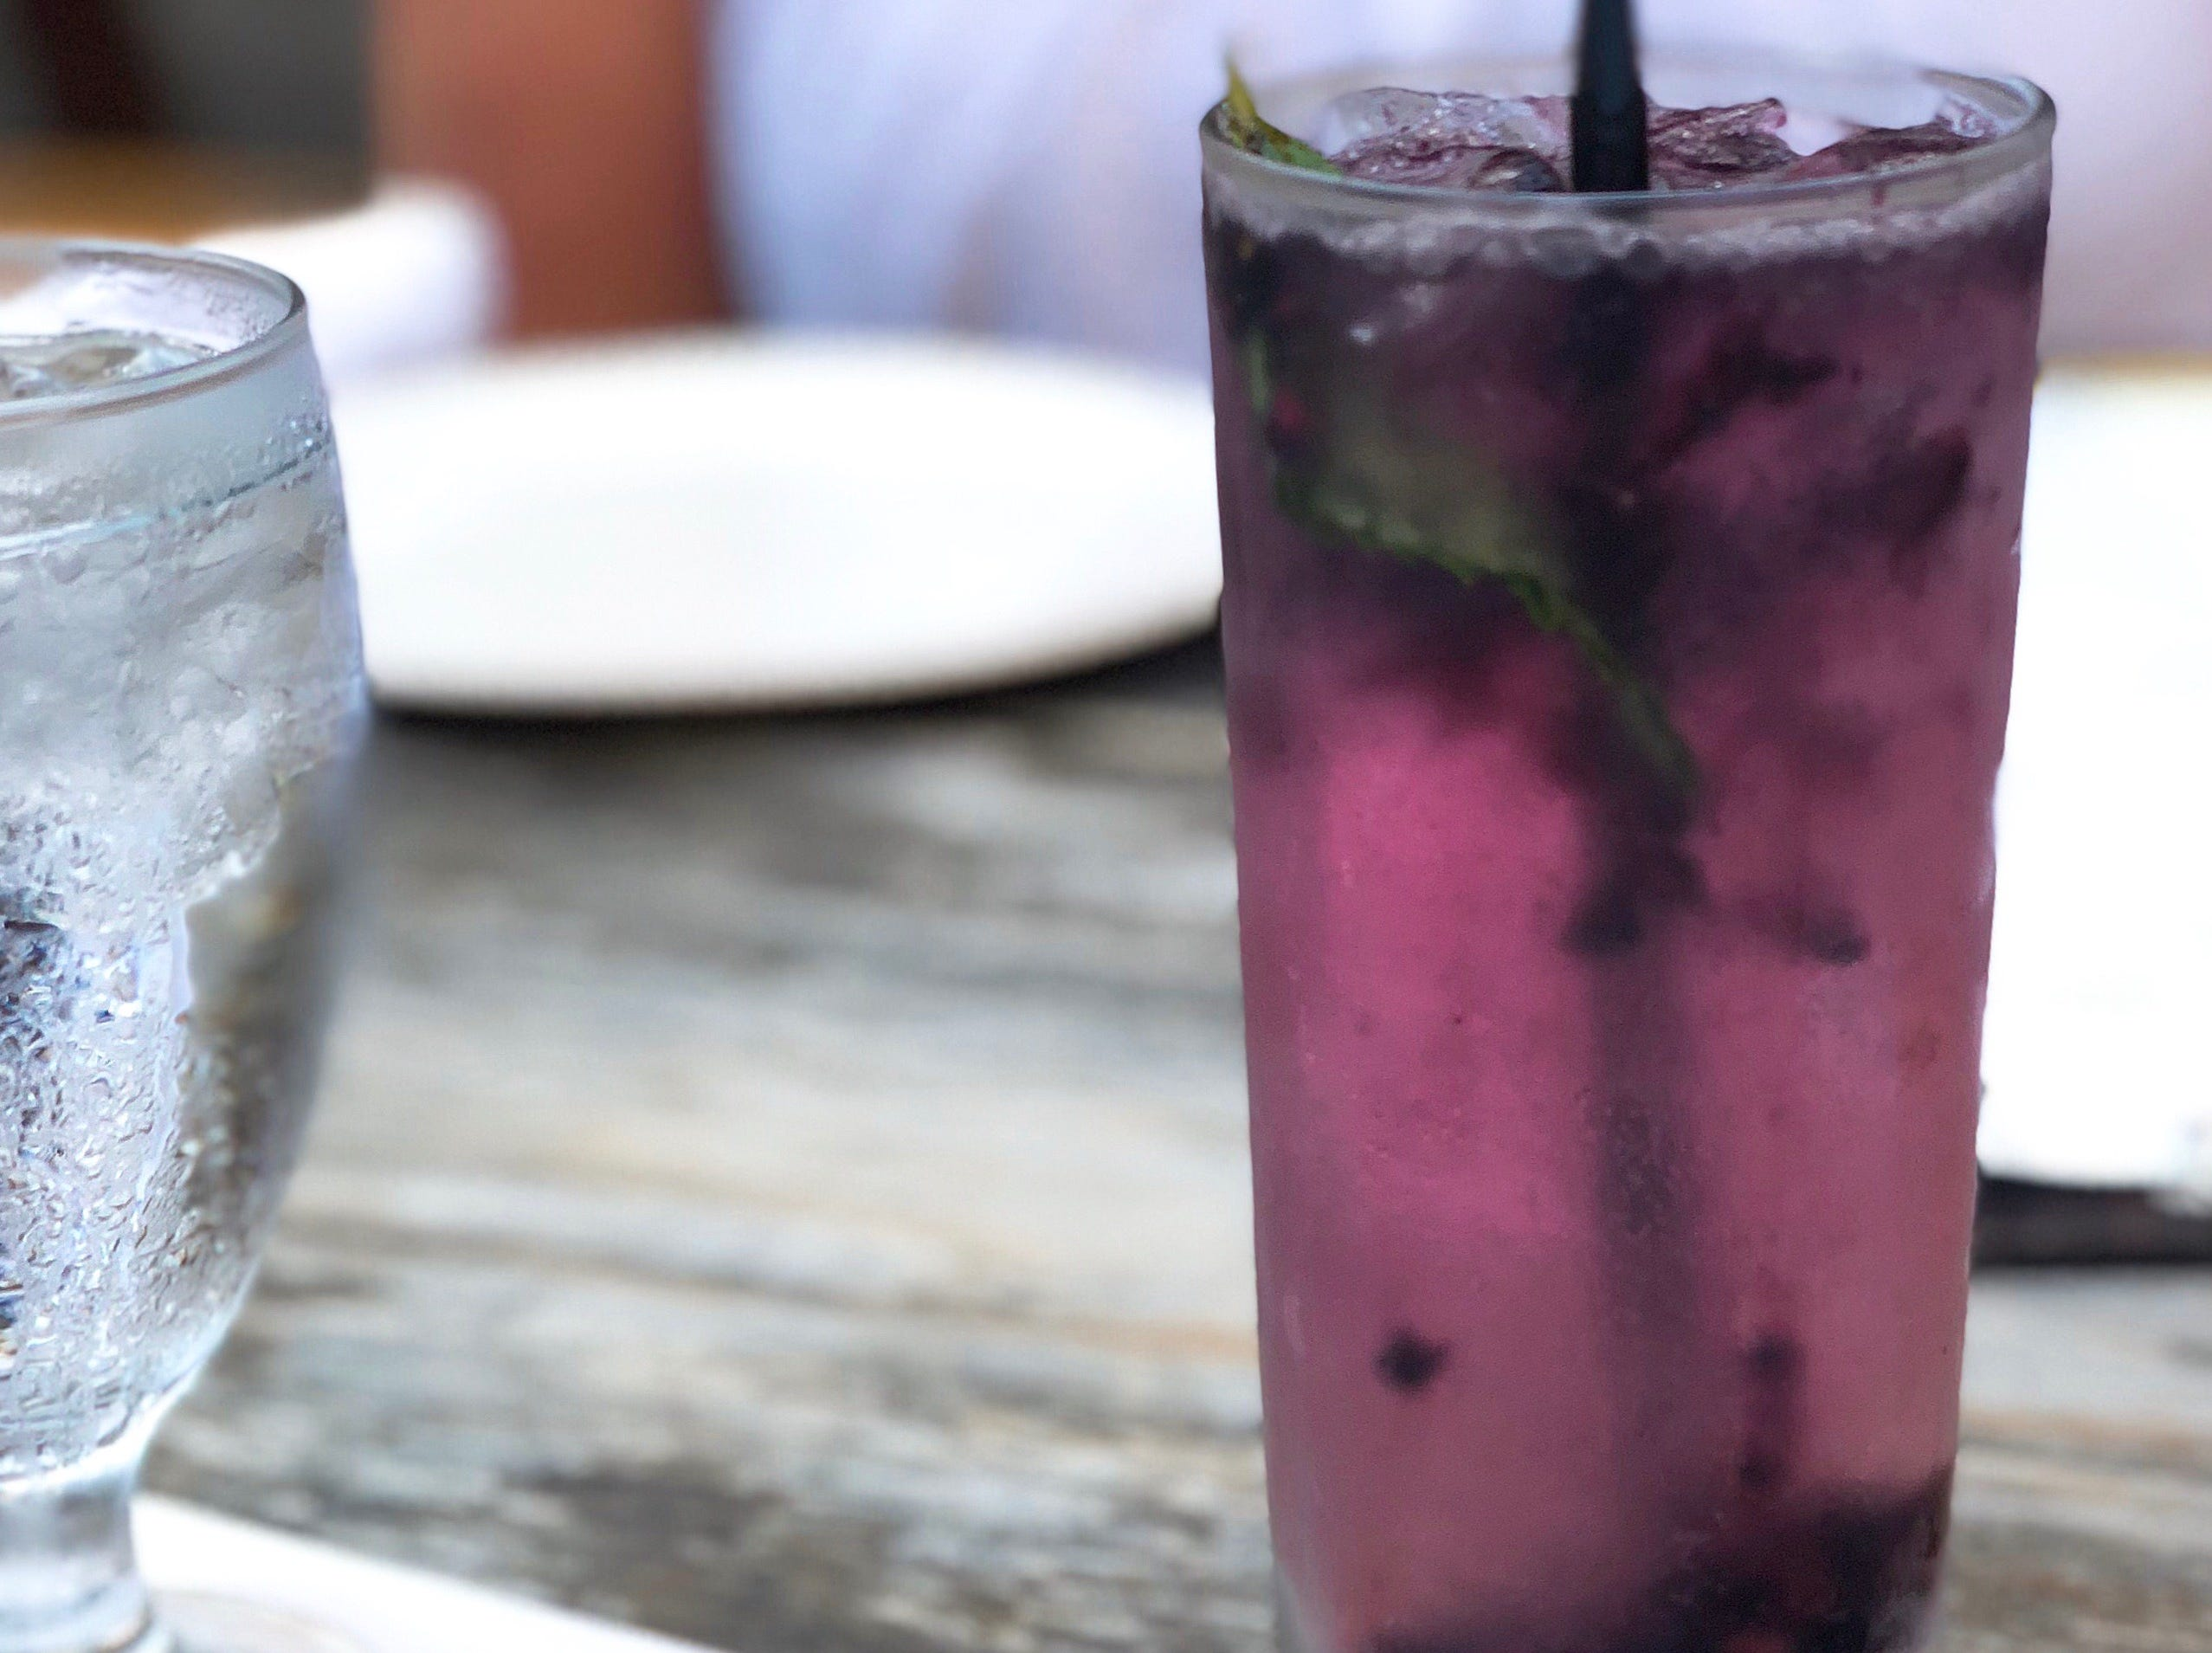 The King Sue Ii Cocktail special contains local blackberries, vodka, St. Germain and mint topped with sparkling wine.